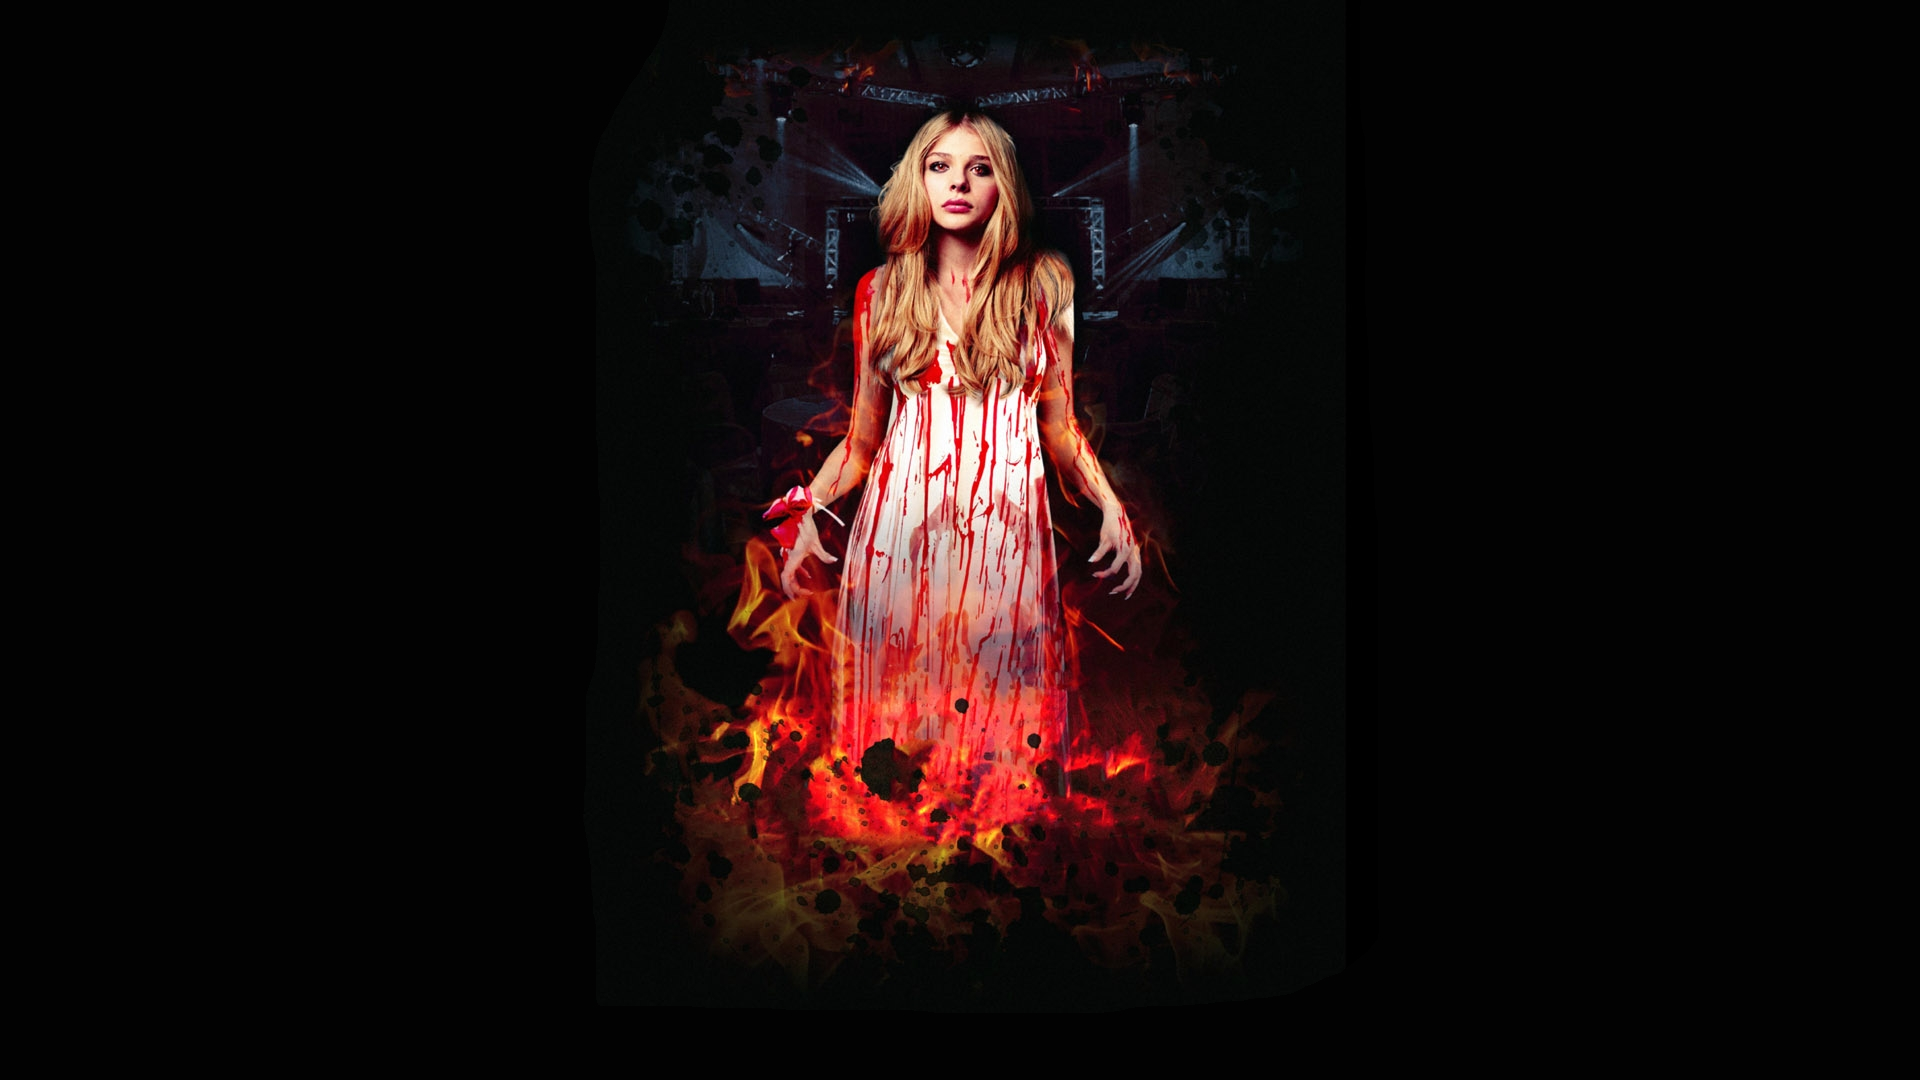 carrie 2013 full hd wallpaper and background image